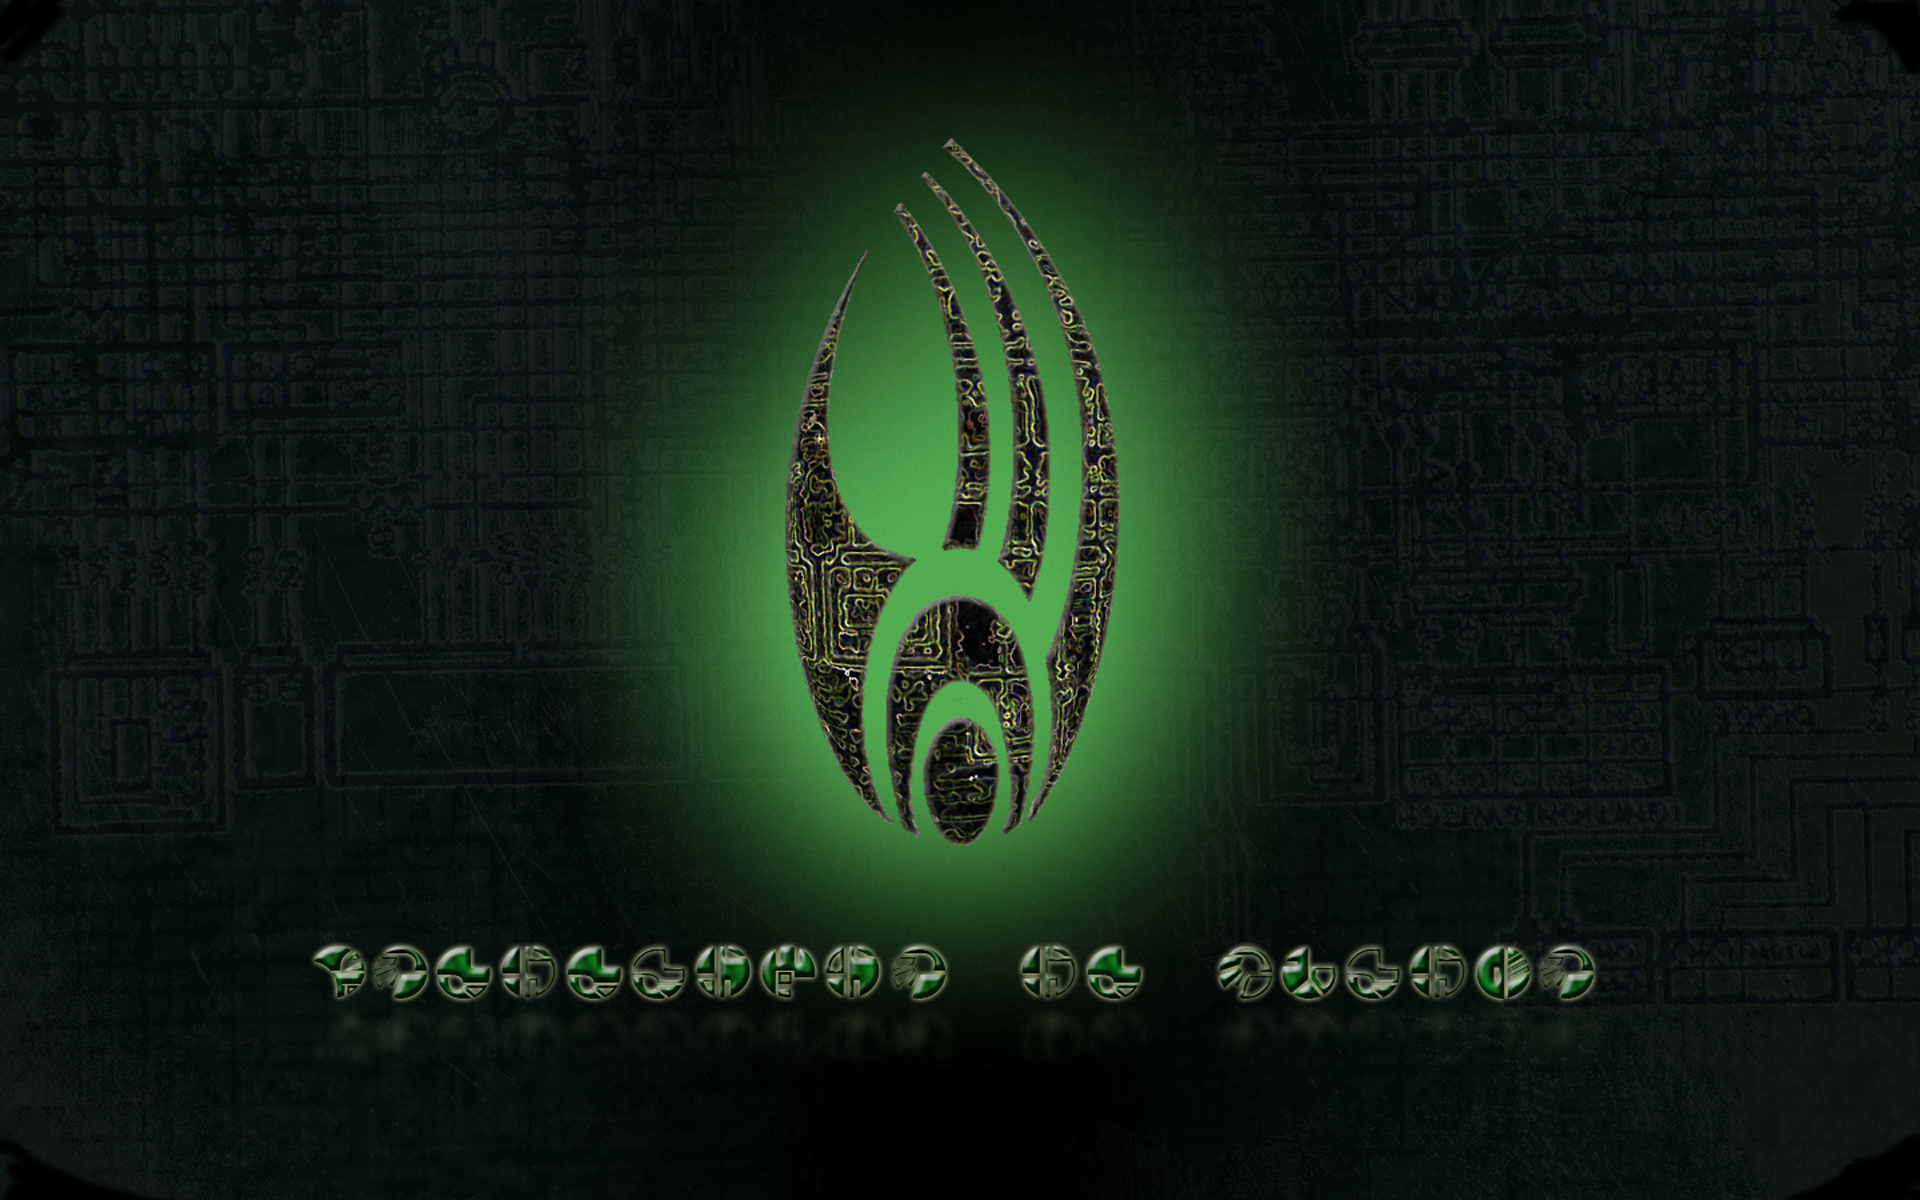 we are The Borg HD Wallpaper